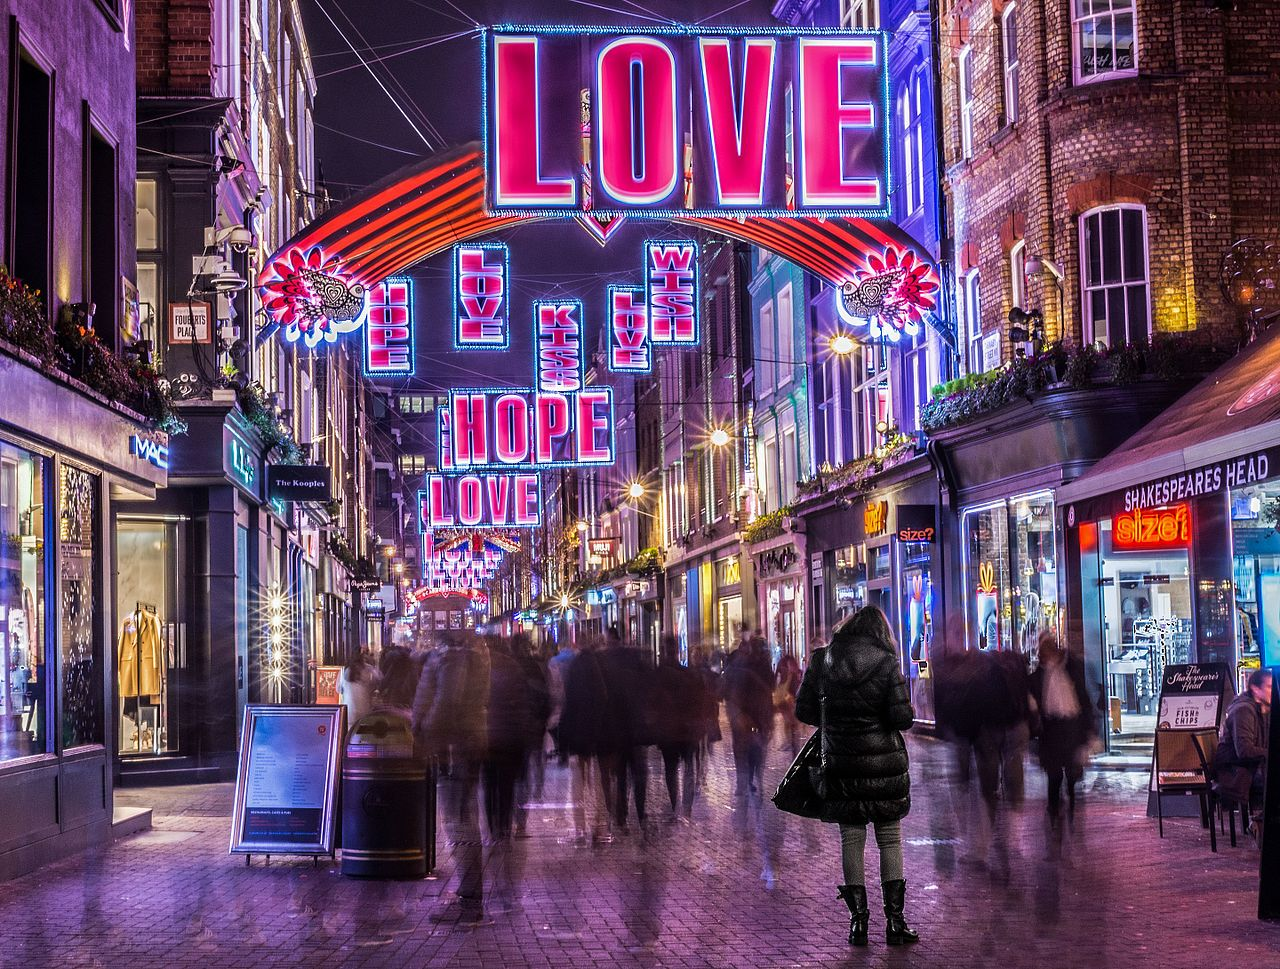 Christmas lights at Carnaby Street (Source: Roger Green on Wikimedia Commons)